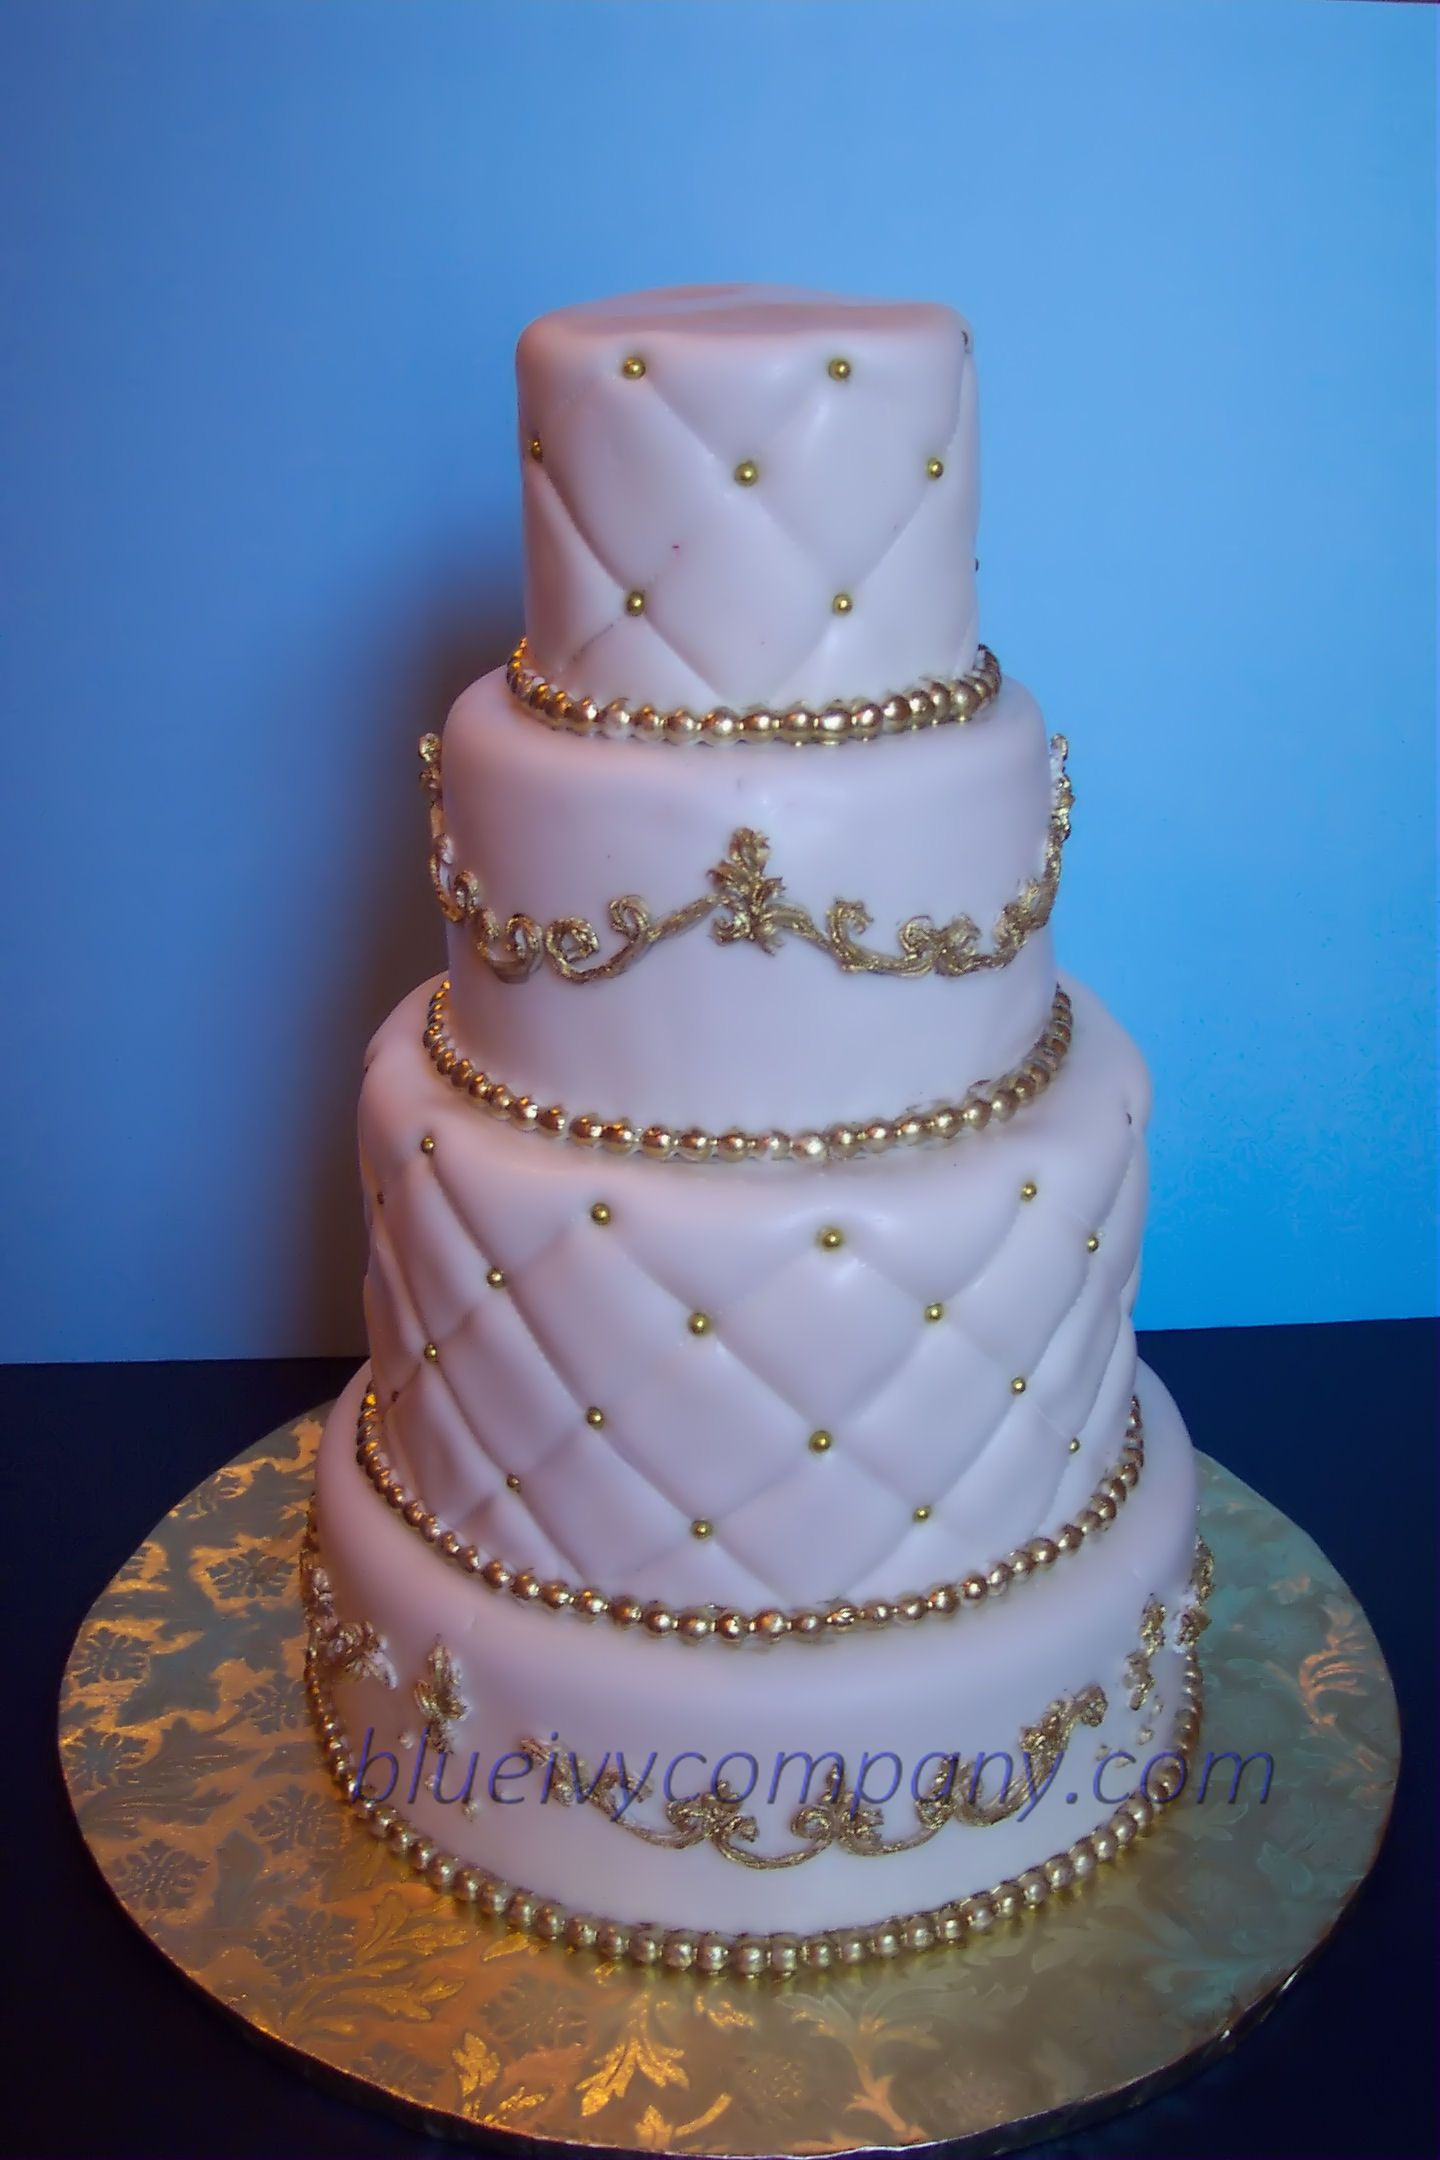 White u gold wedding cake wedding cake for a client covered with